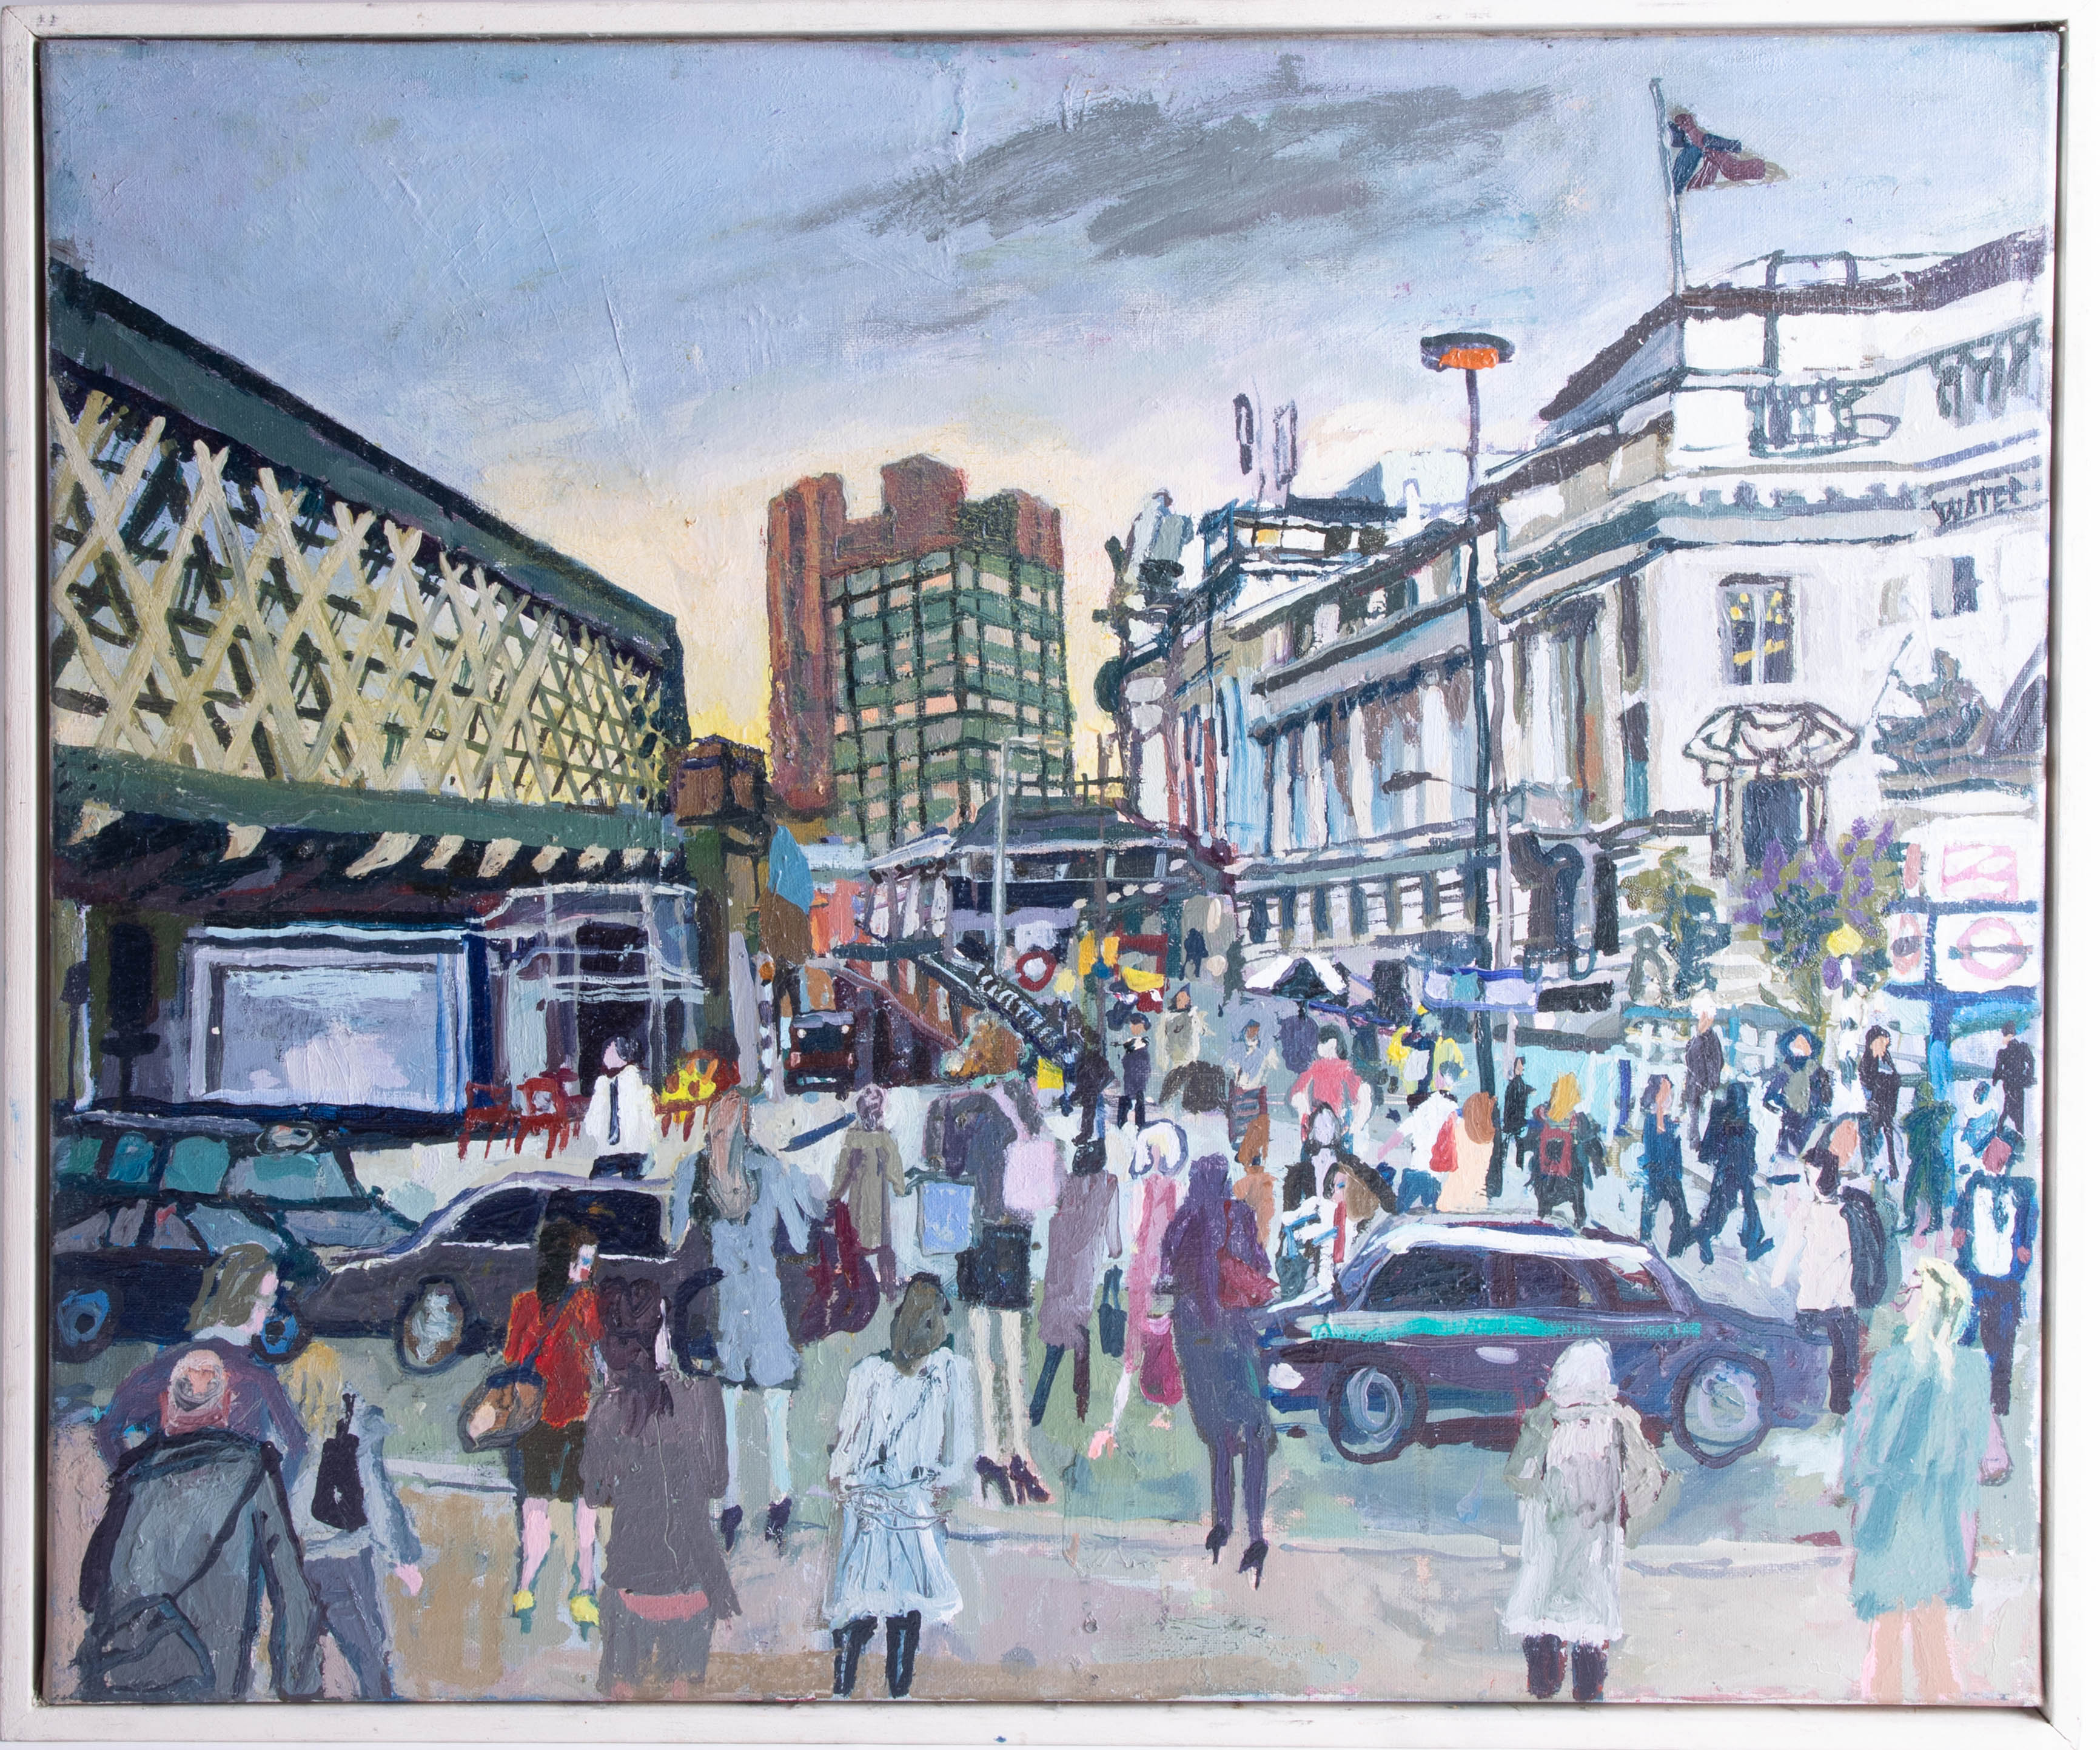 Lot 19 - Nicholas Borden, oil on canvas 'Waterloo, London' 50cm x 60cm signed to verso Exhibited 2003